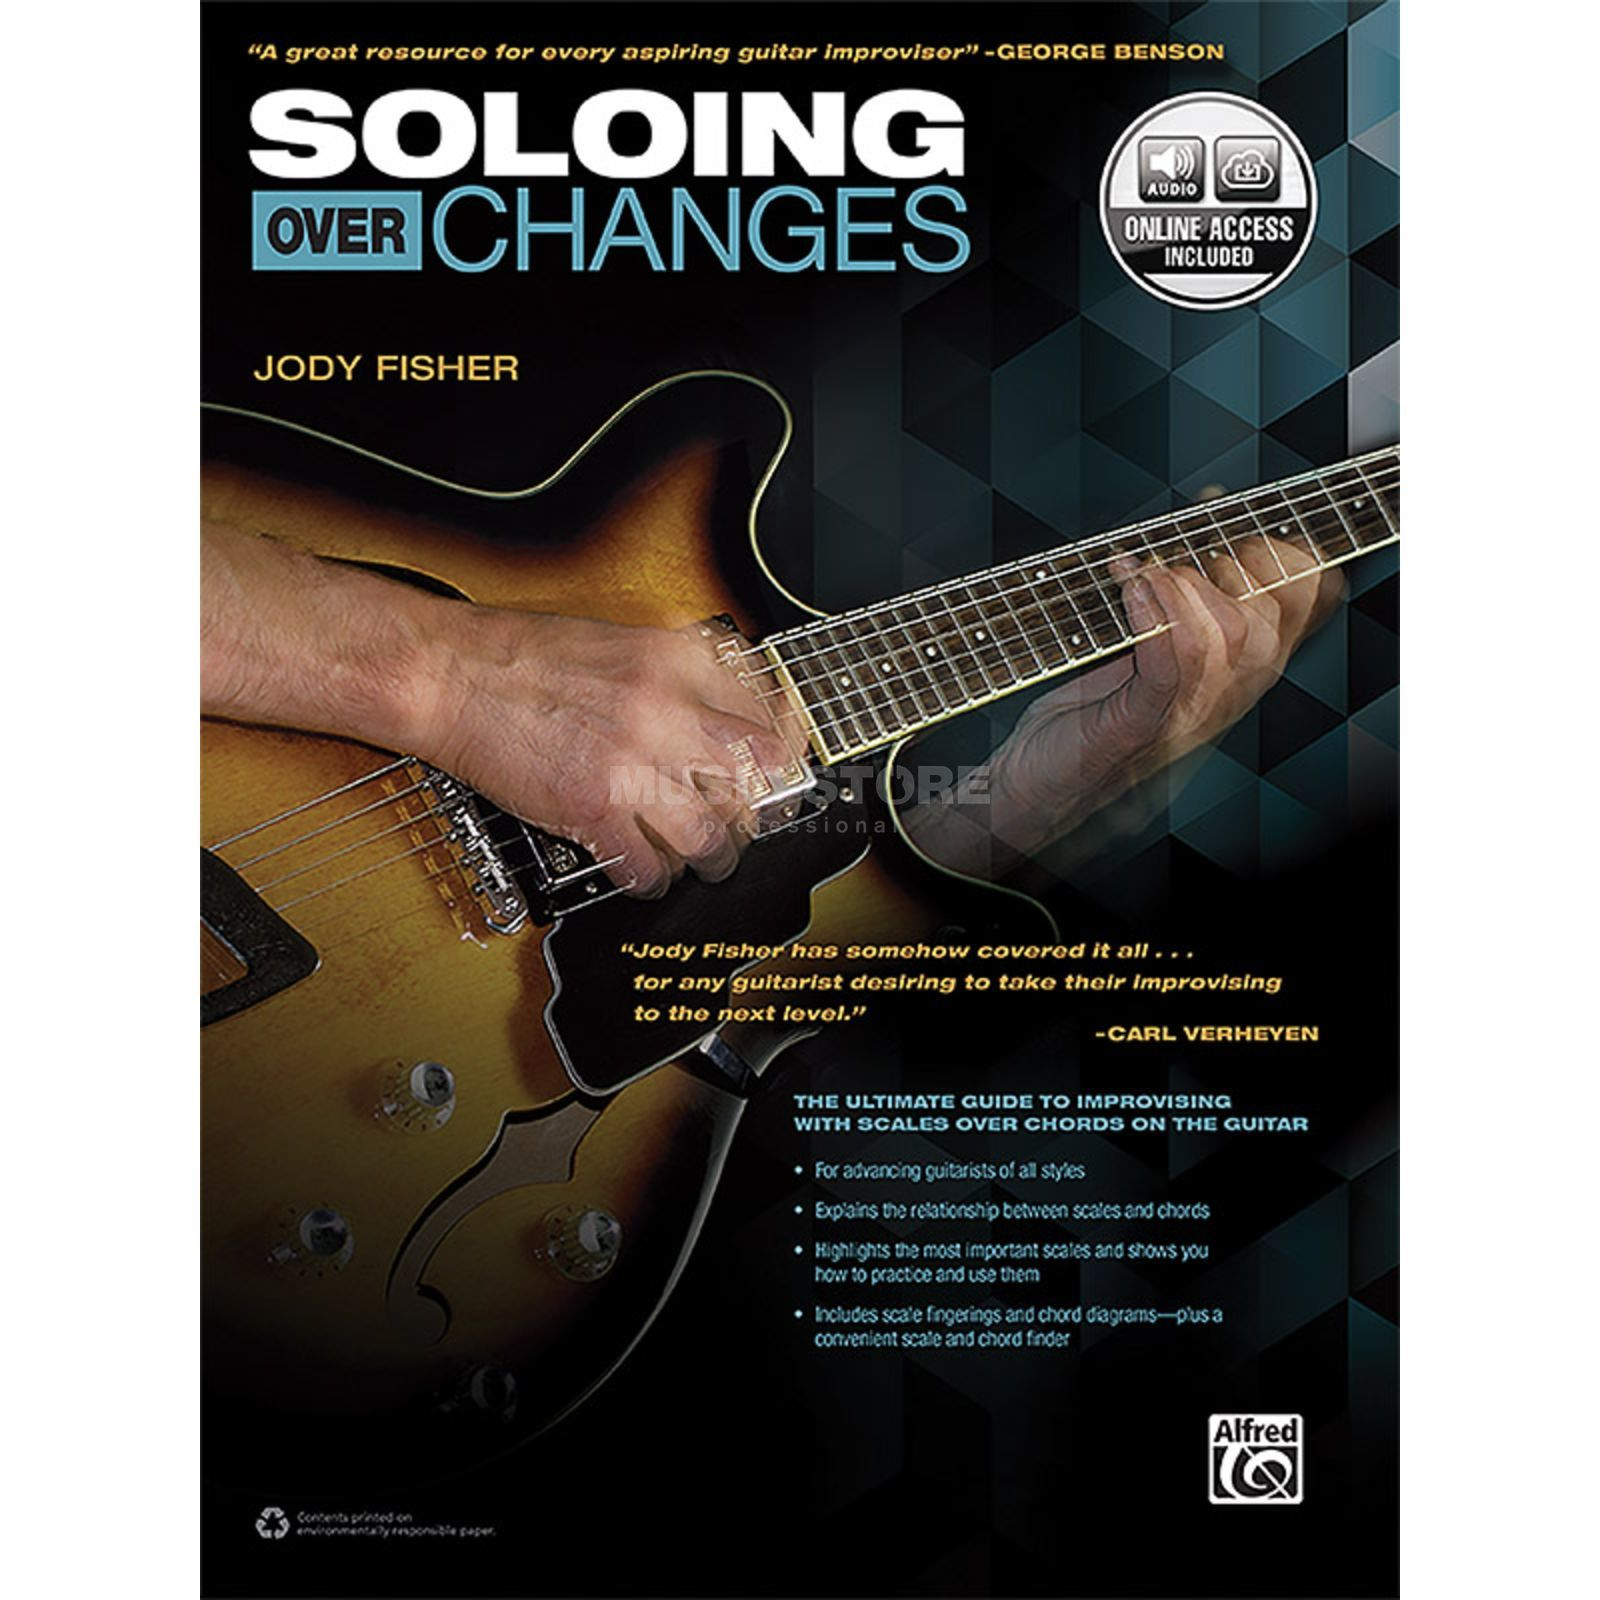 Alfred Music Soloing over Changes Produktbild